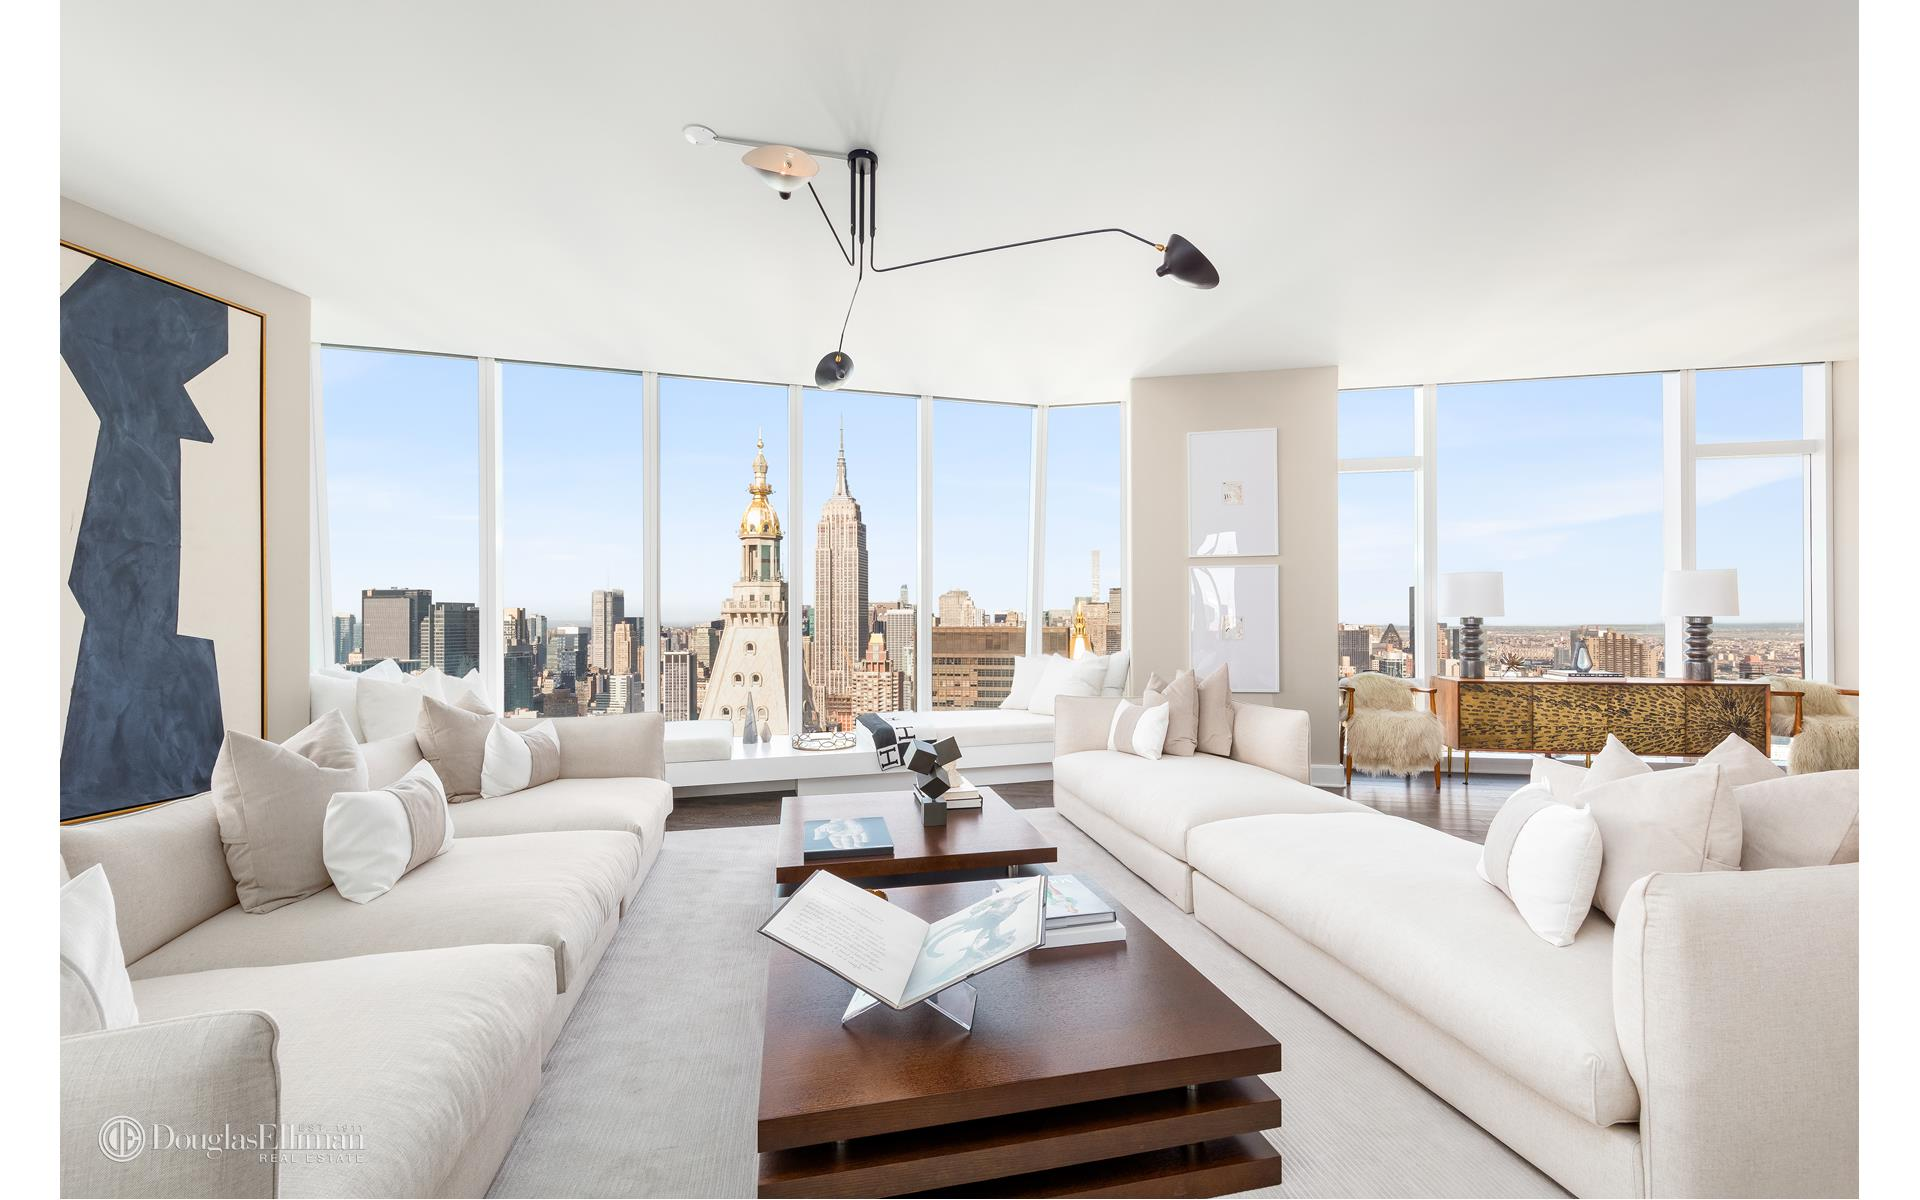 Condominium for Sale at 45 East 22Nd Street 55-Flr 45 East 22Nd Street New York, New York 10010 United States